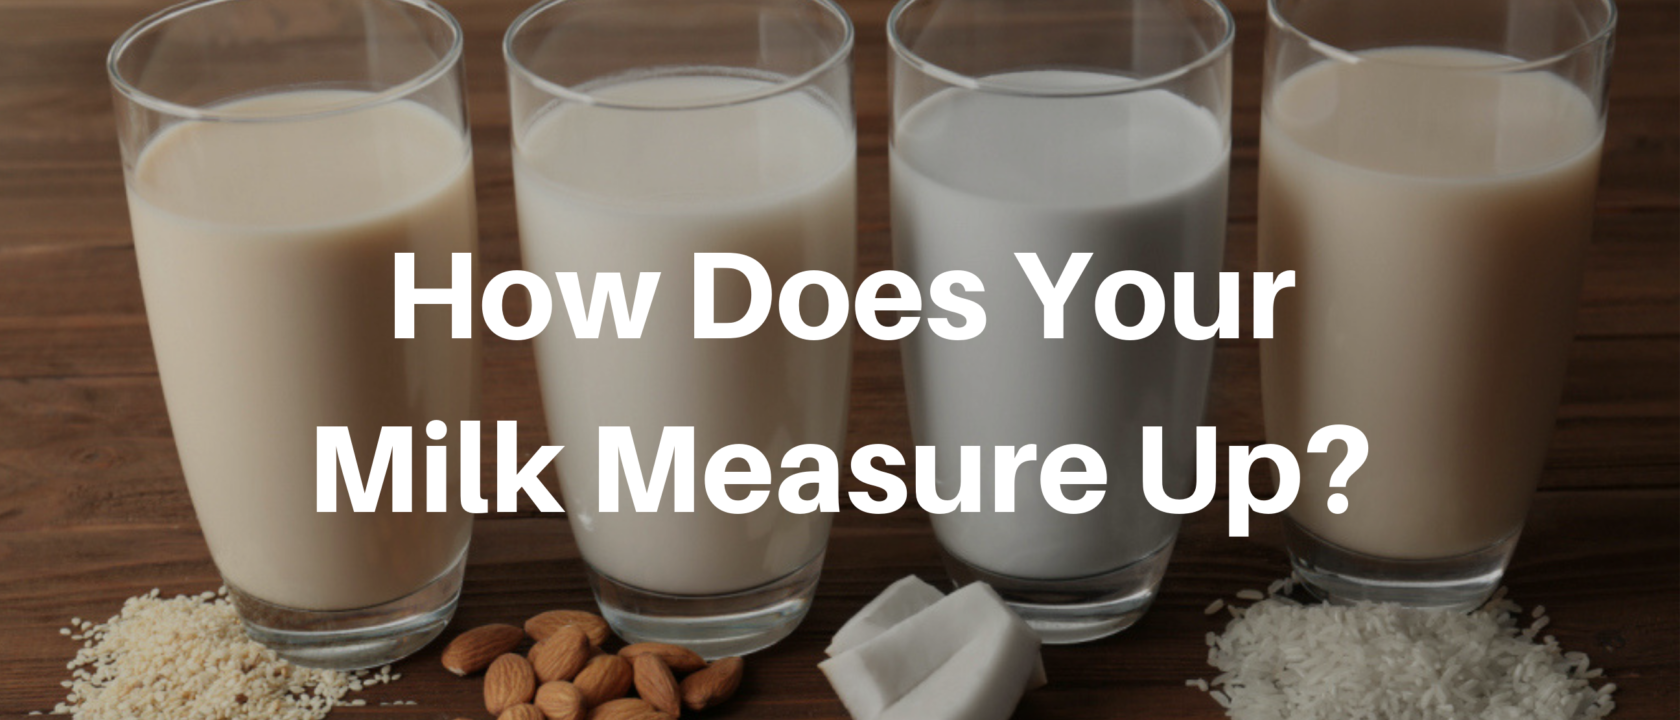 How Does Your Milk Measure Up?